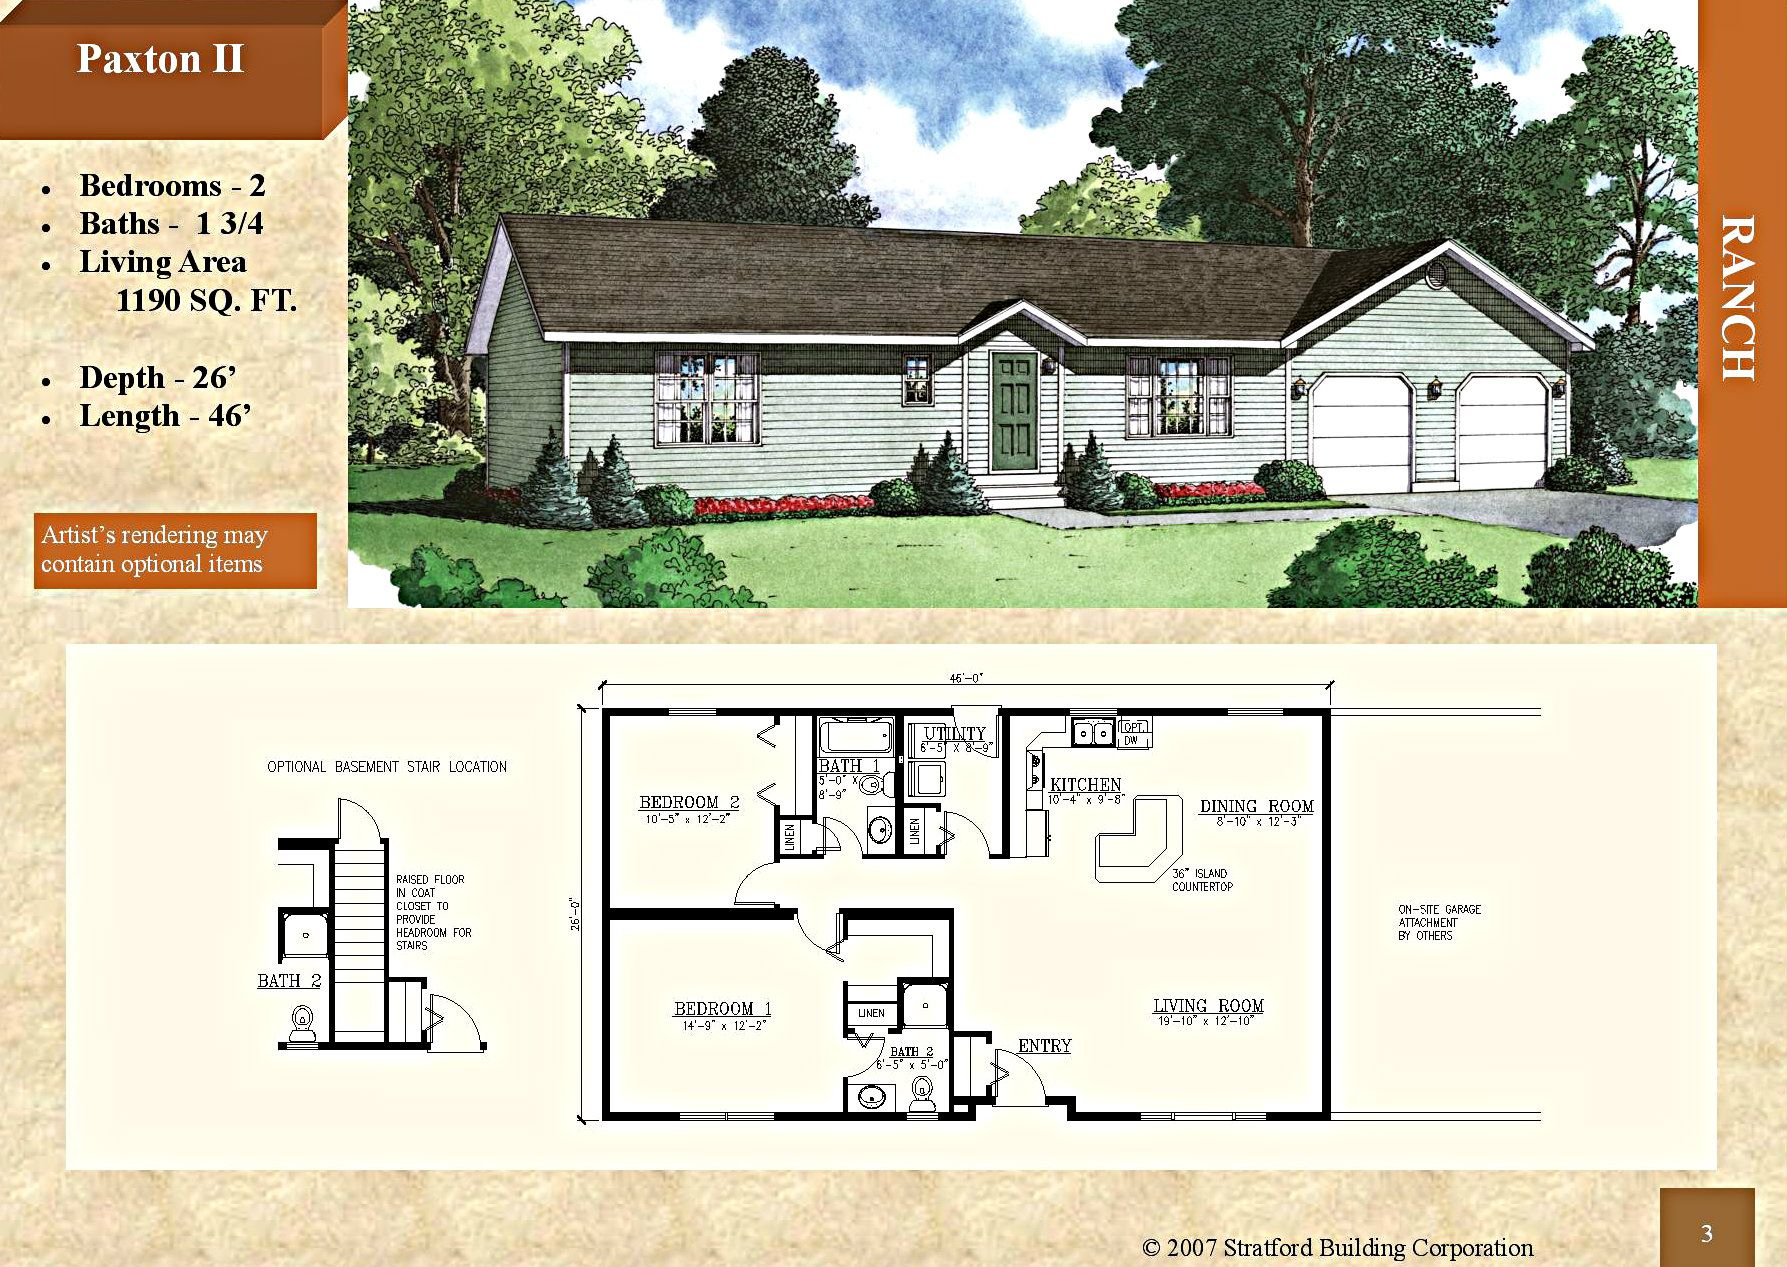 modular 2 story floor plan meadow valley 2740 sq ft modular ranch style home paxton ii 1190 sq recessed entry kitchen island master bedroom bath with shower